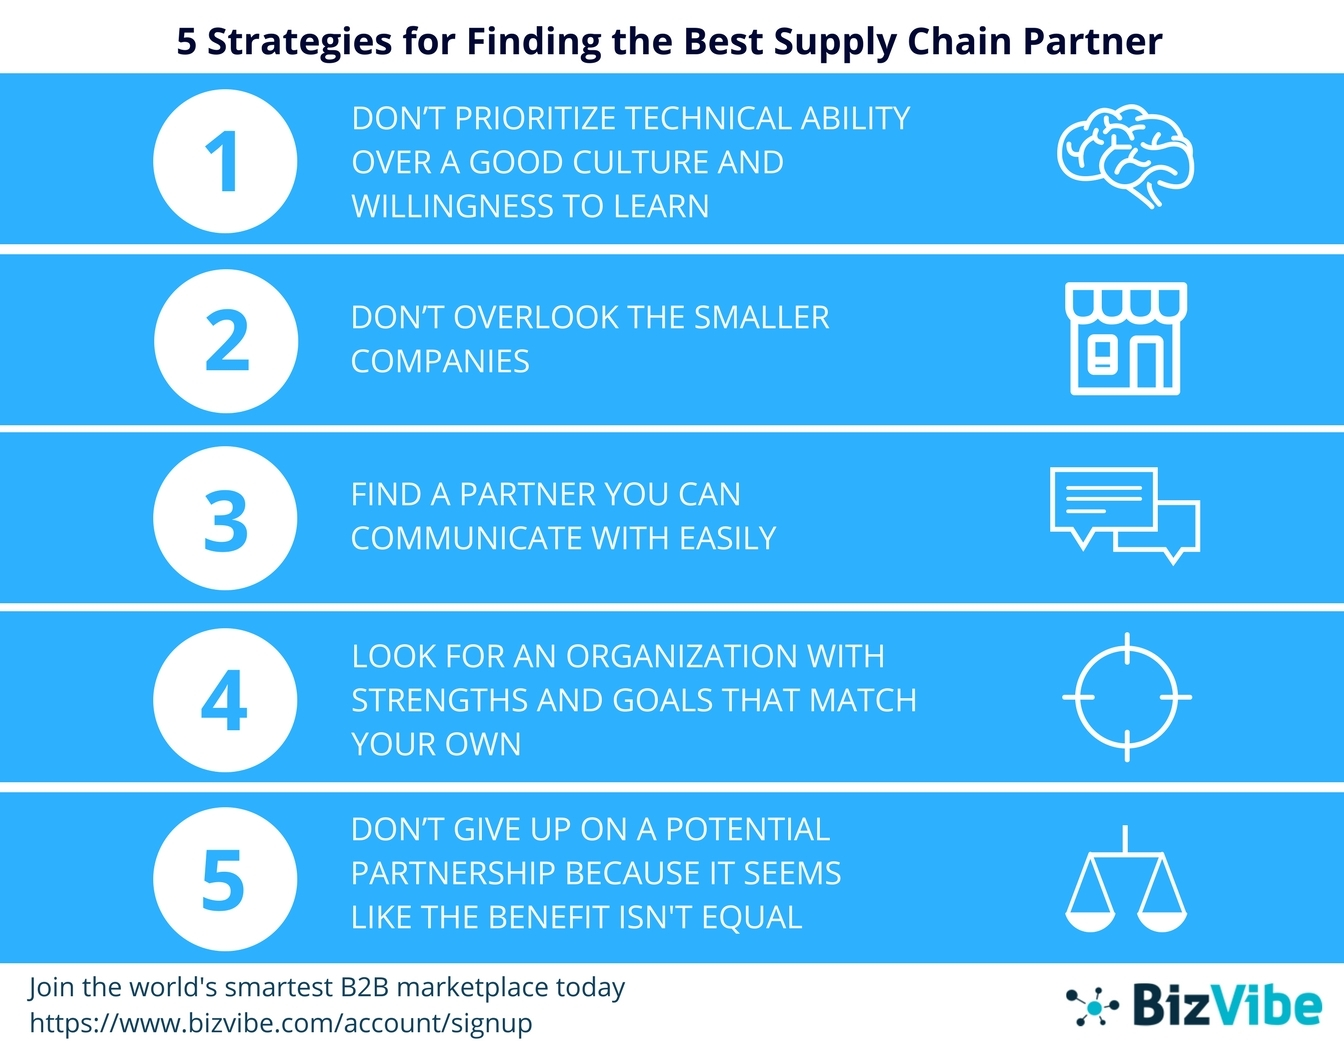 BizVibe recently announced their top 5 strategies for finding the best supply chain partner. (Graphic: Business Wire)